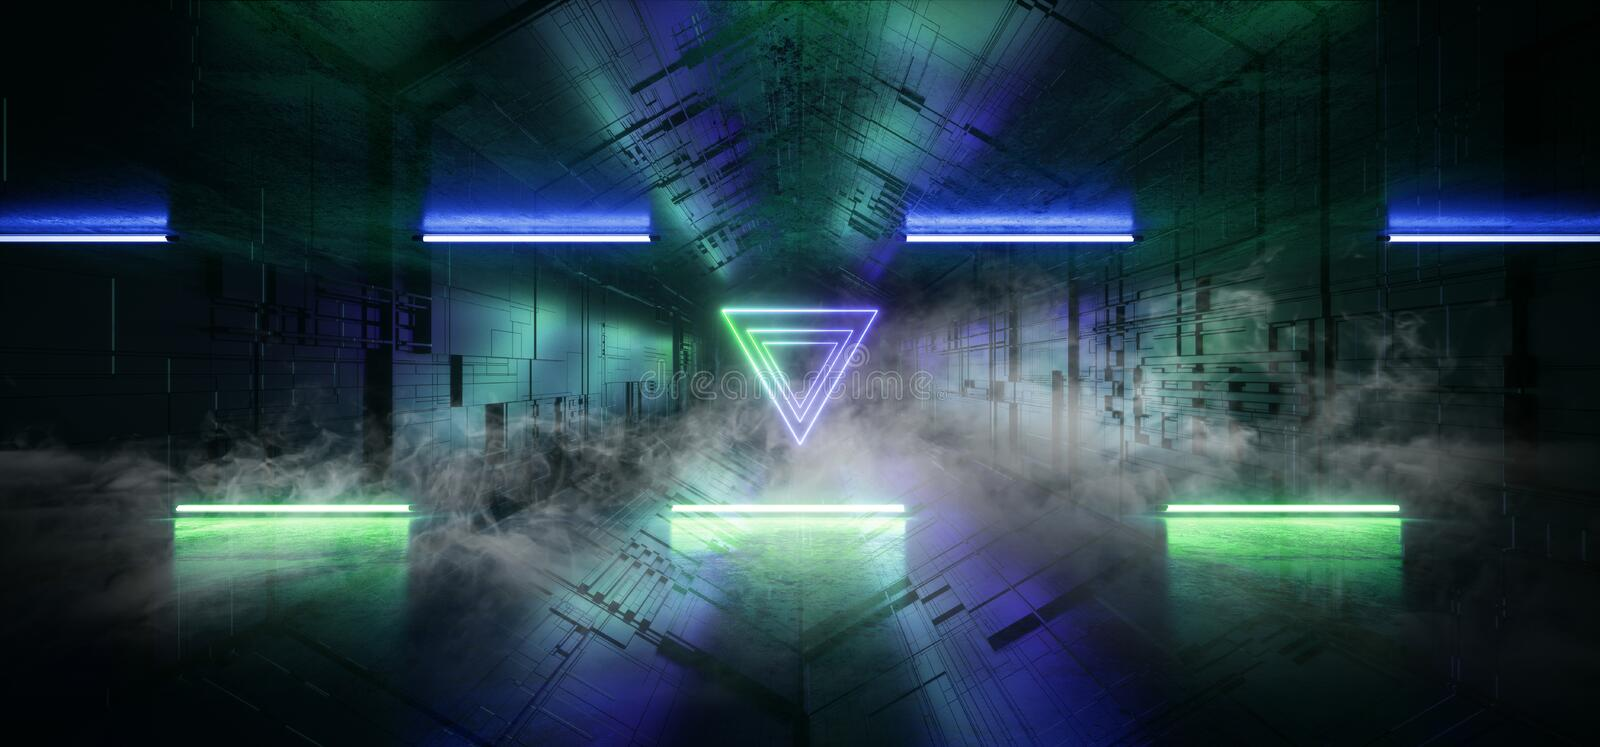 Smoke Neon Glowing Laser Blue Green Triangle Sci Fi Futuristic  Technology Schematic Motherboard Matrix Chip Reflective Gate. Portal Vibrant Tunnel Corridor vector illustration